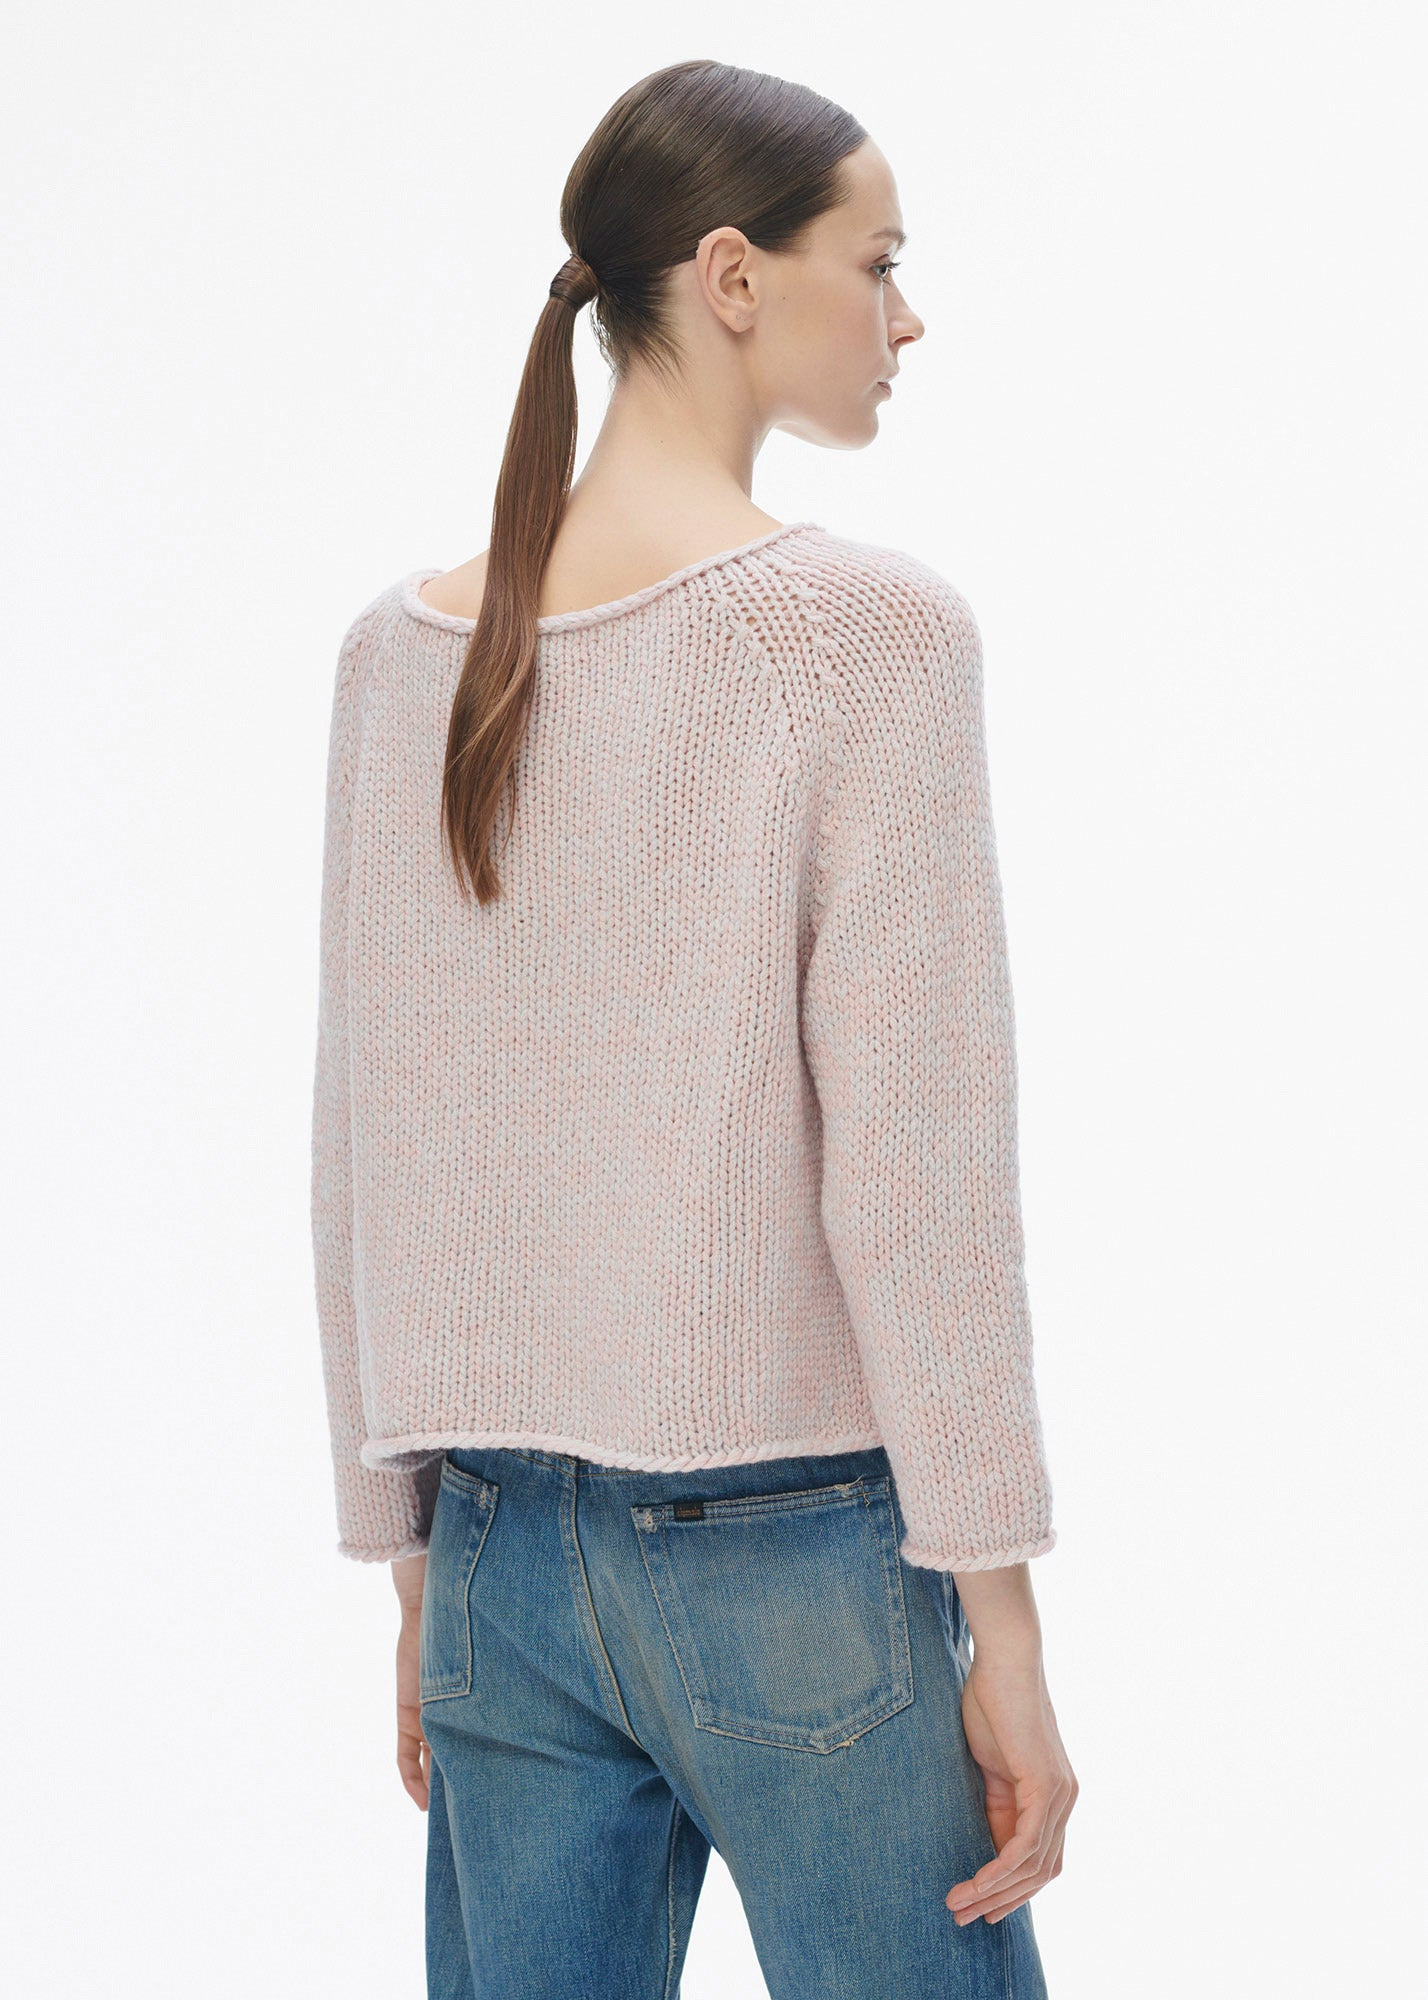 Mian Sweater Vieux Rose/ Silver